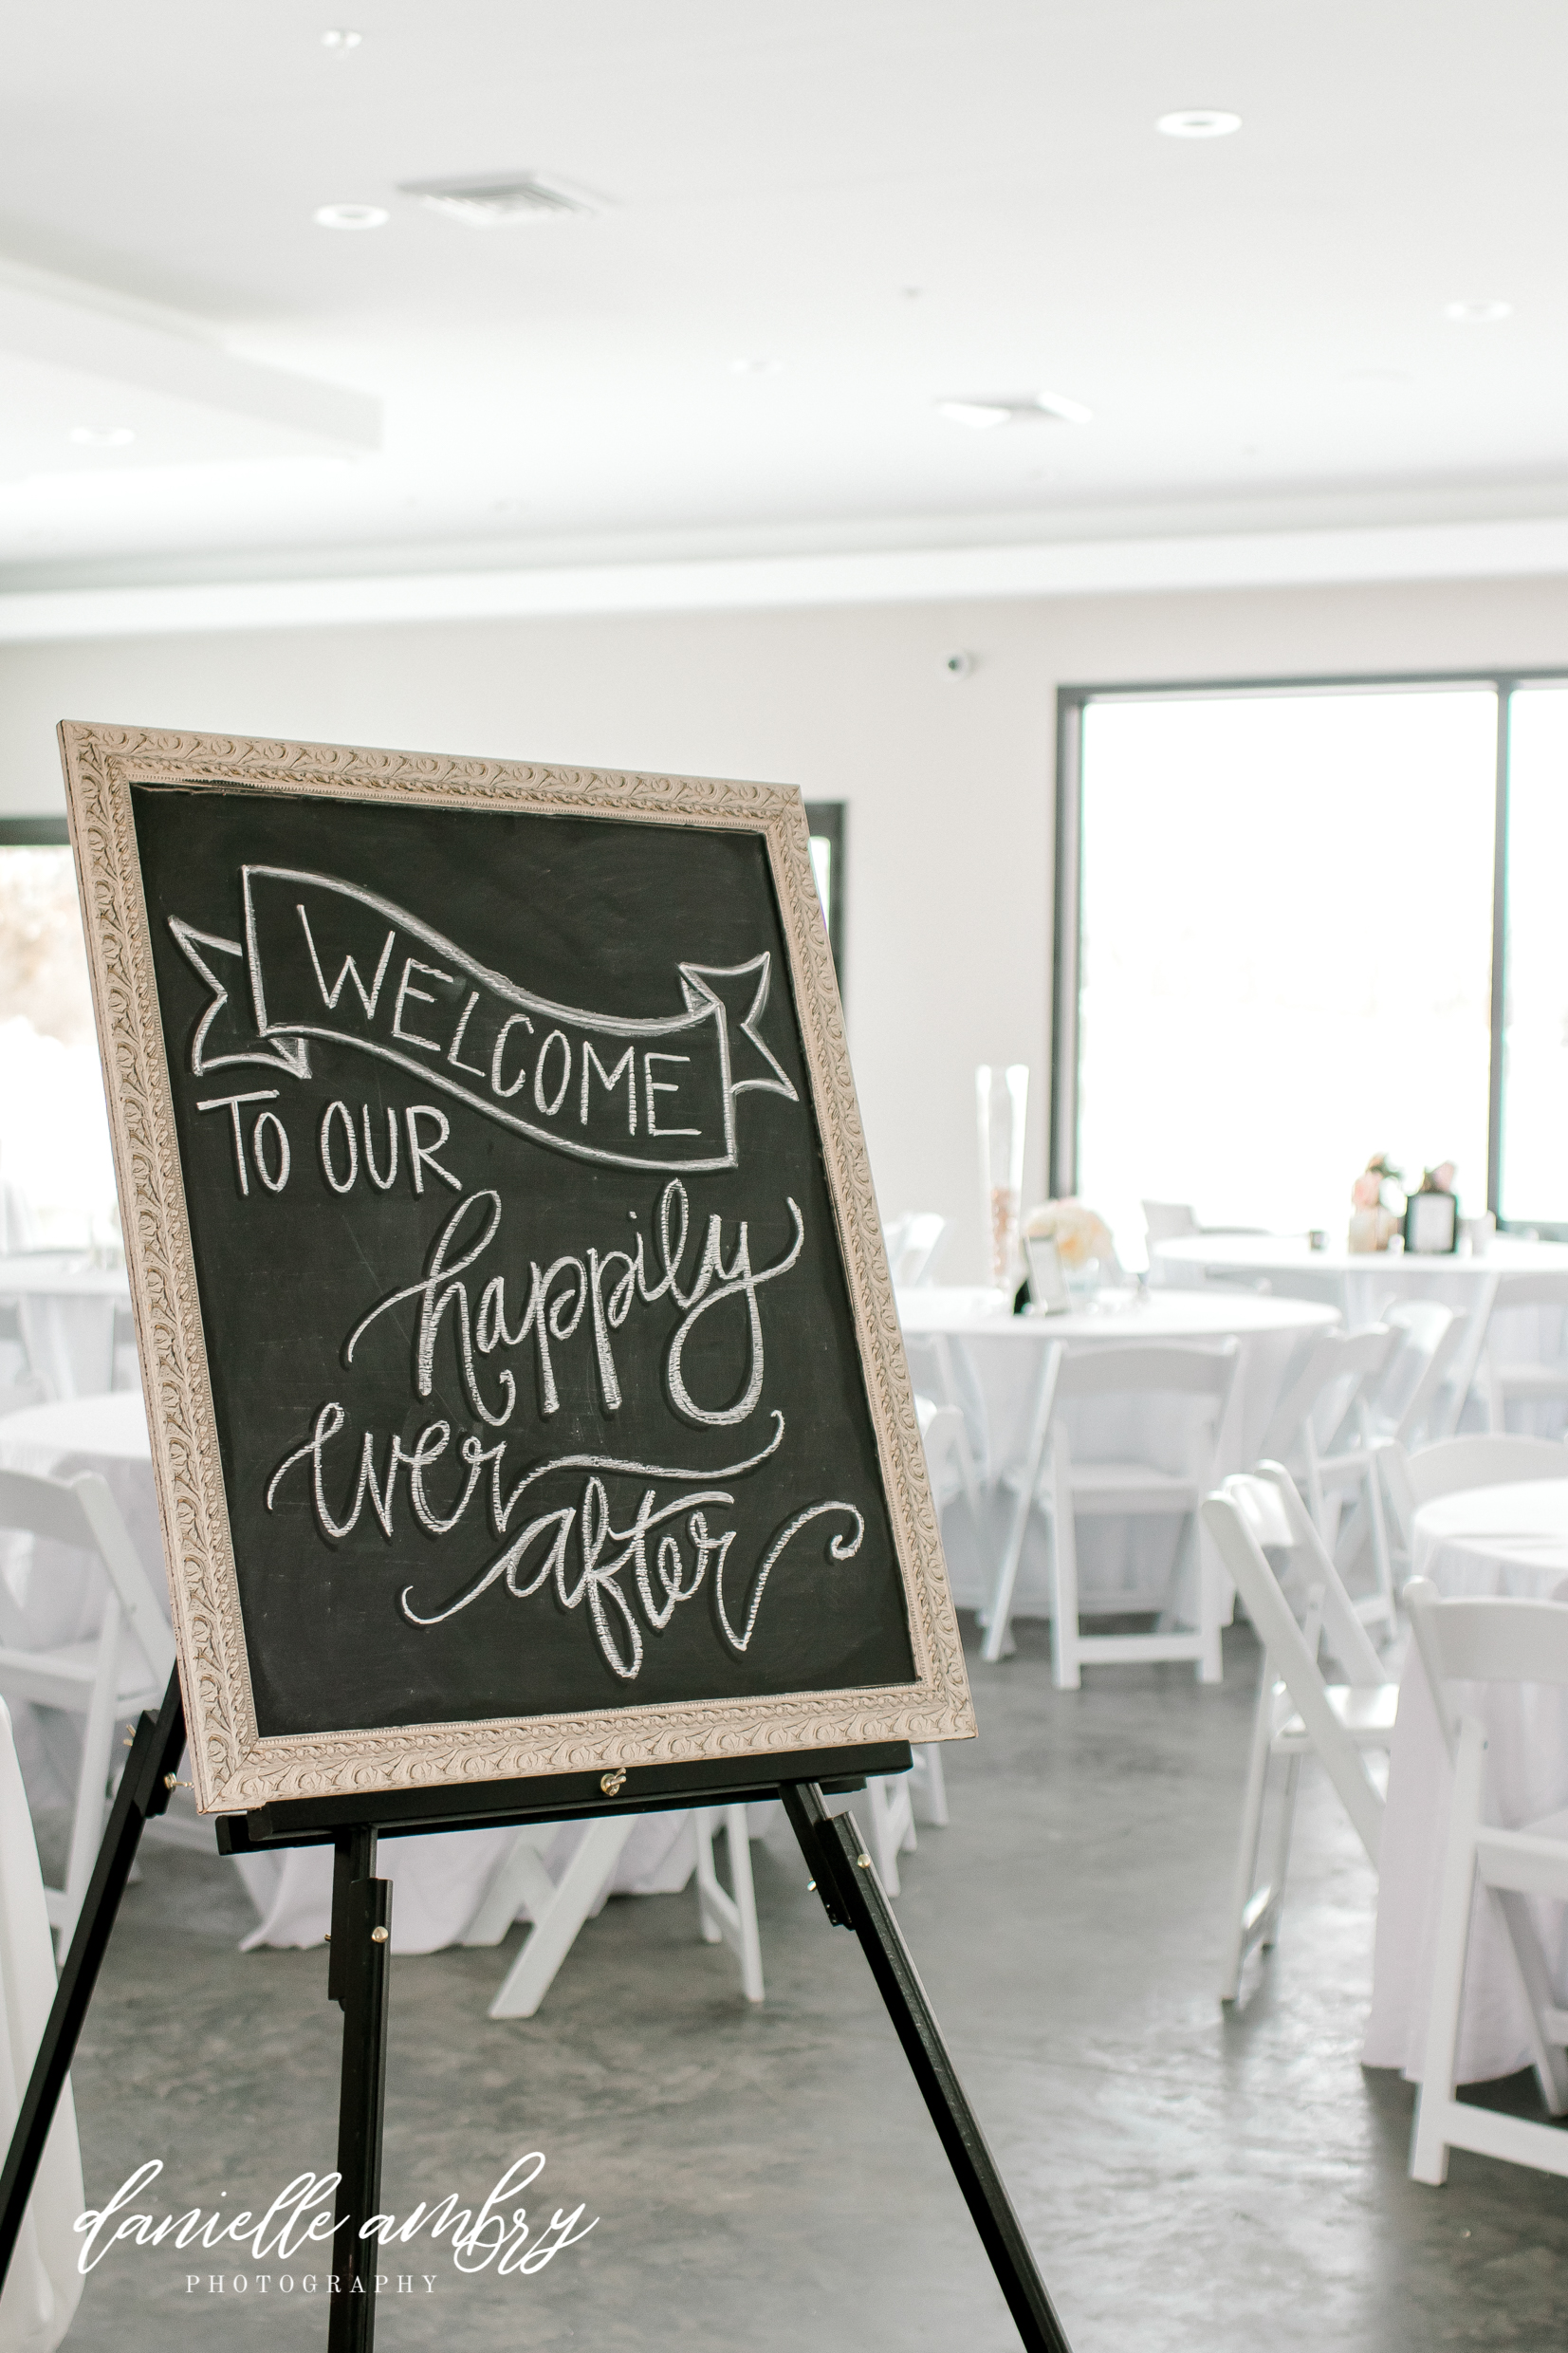 alexis-and-robby-wedding-blog-021619 (5 of 59).jpg